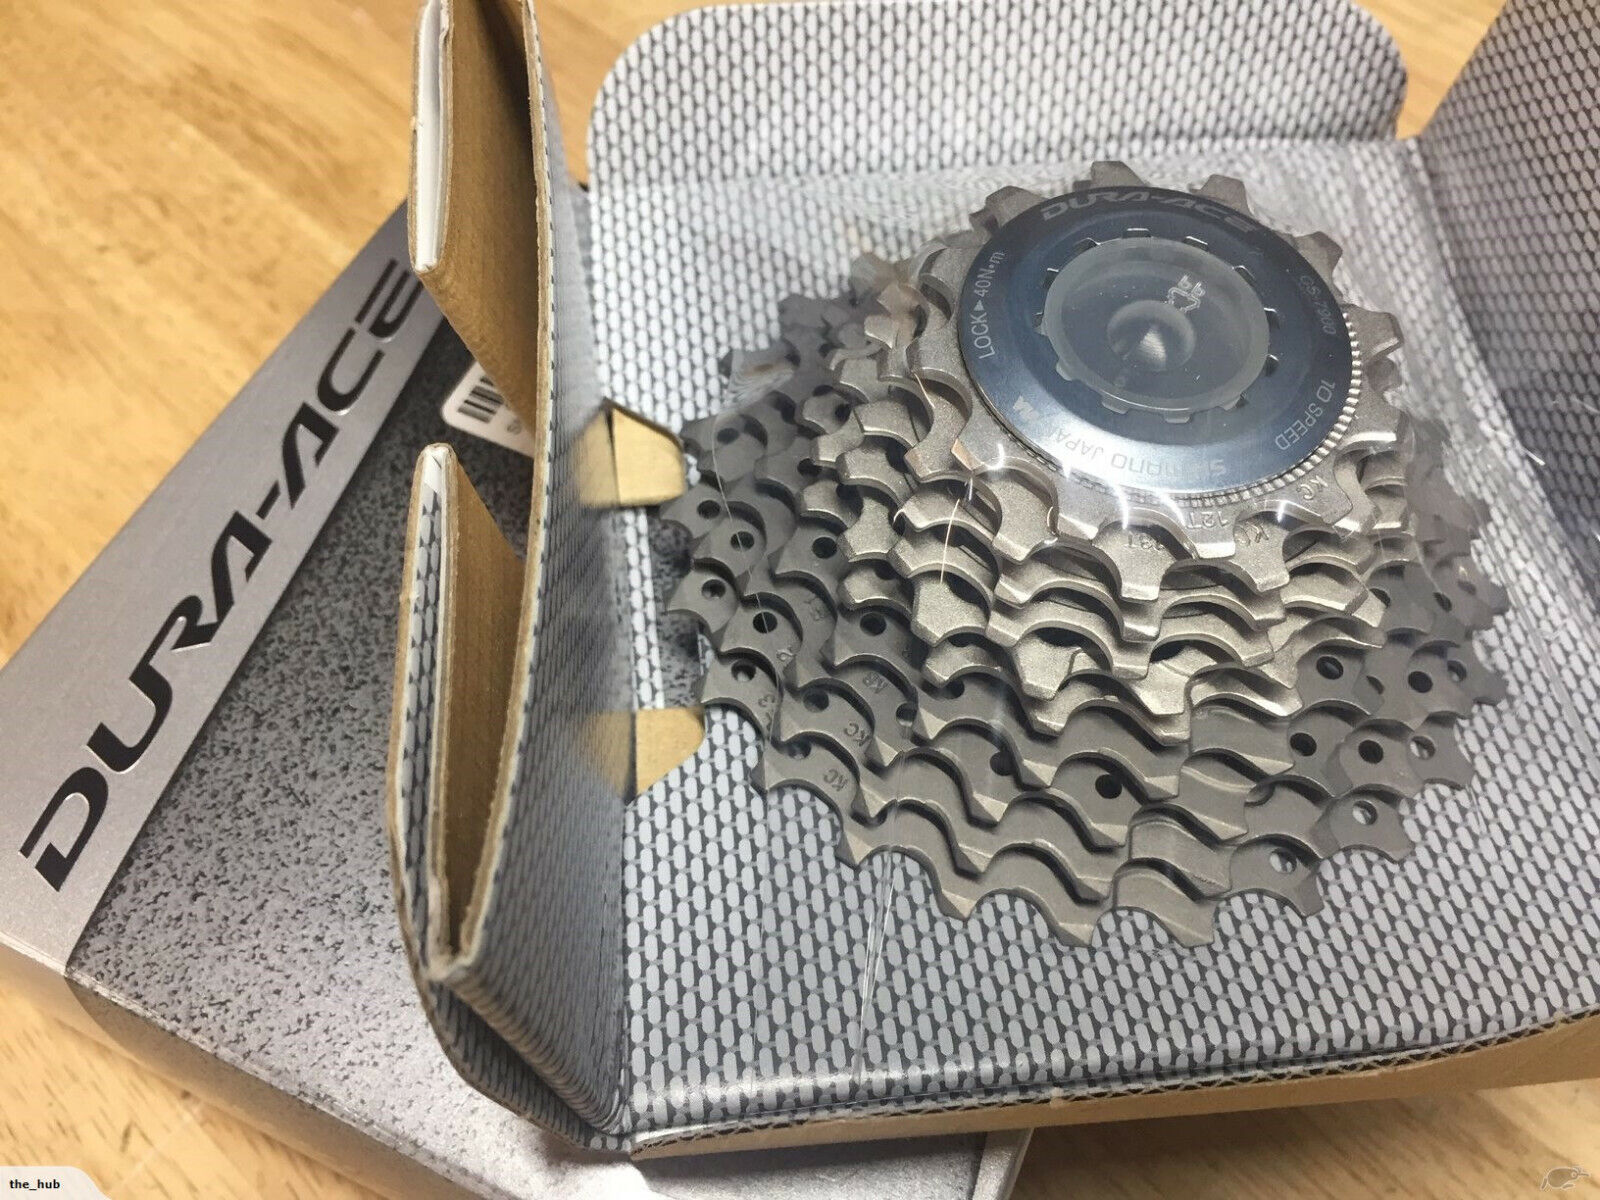 NOS Shimano Dura-Ace CS-7900 10-Speed Road Bicycle Cassette Assorted Größes